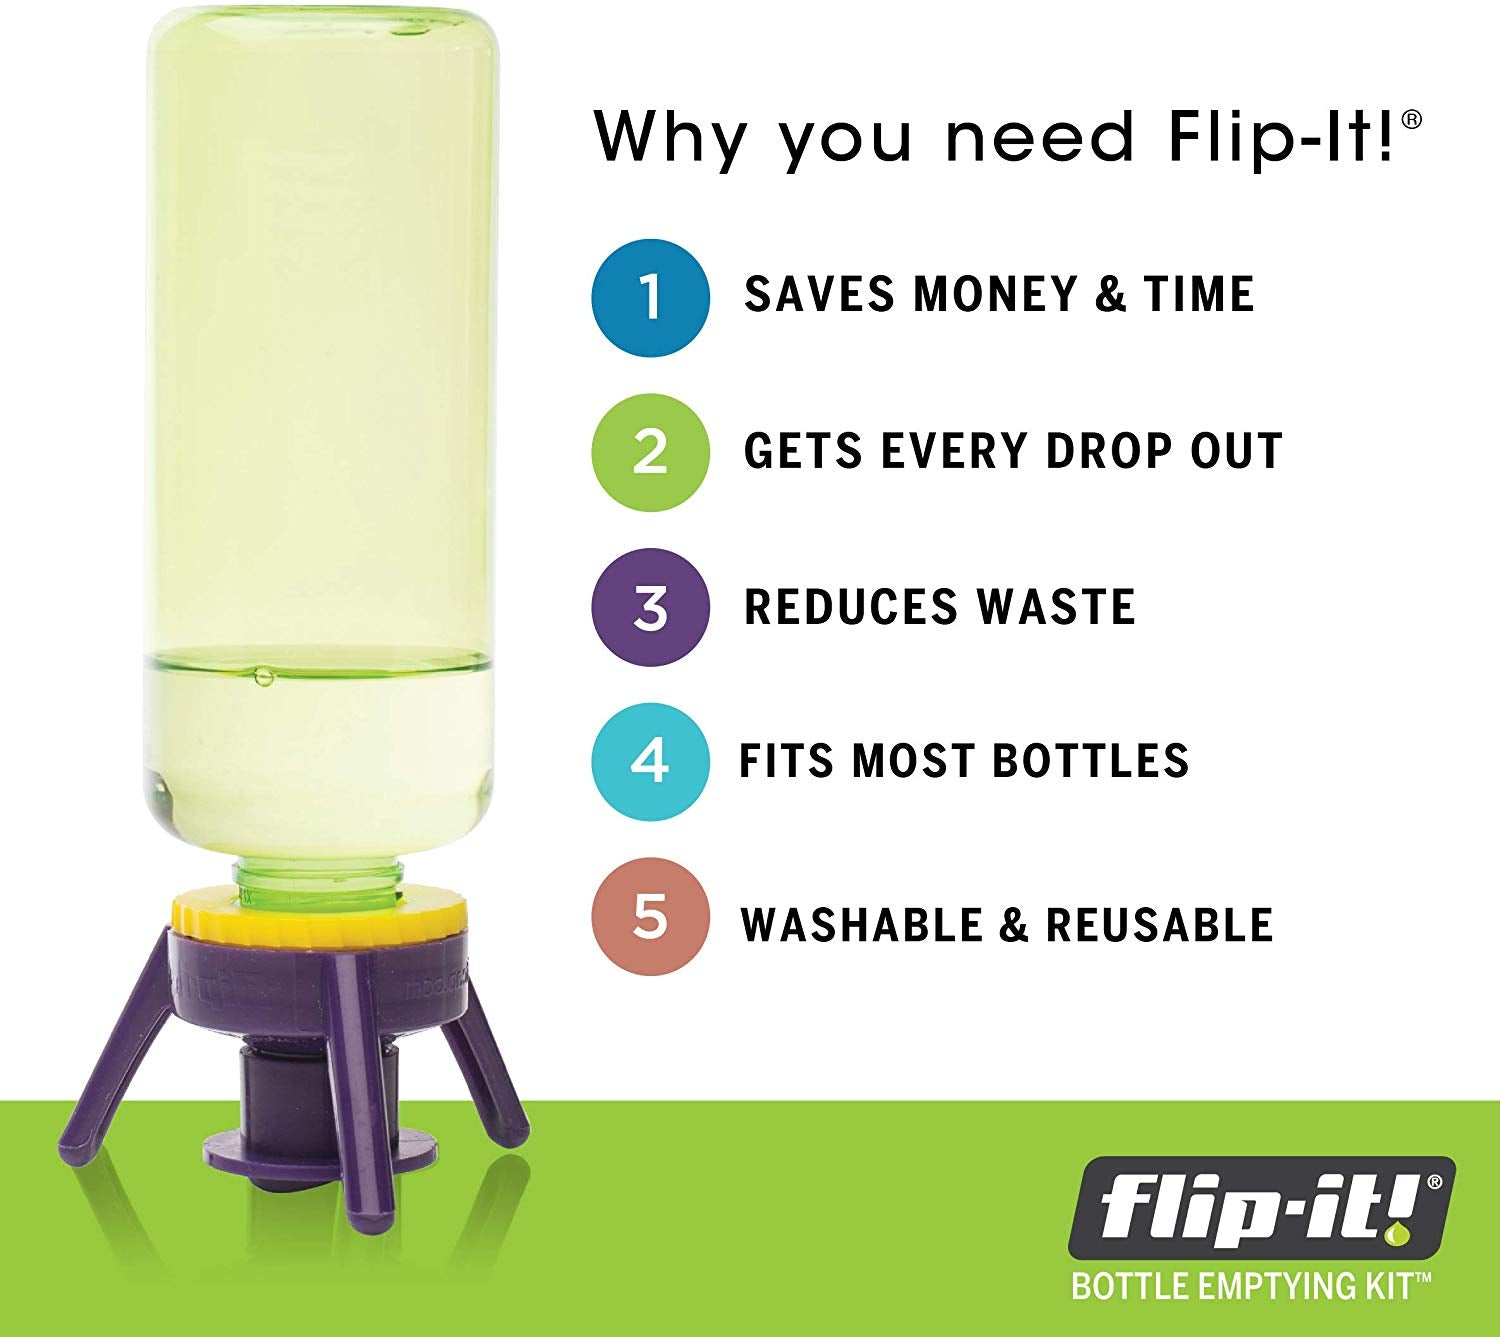 Bottle Emptying Kit - Flip Bottle Upside Down To Get Every Last Drop Out of Honey, Ketchup, Condiments and Beauty Products With Flip-It!